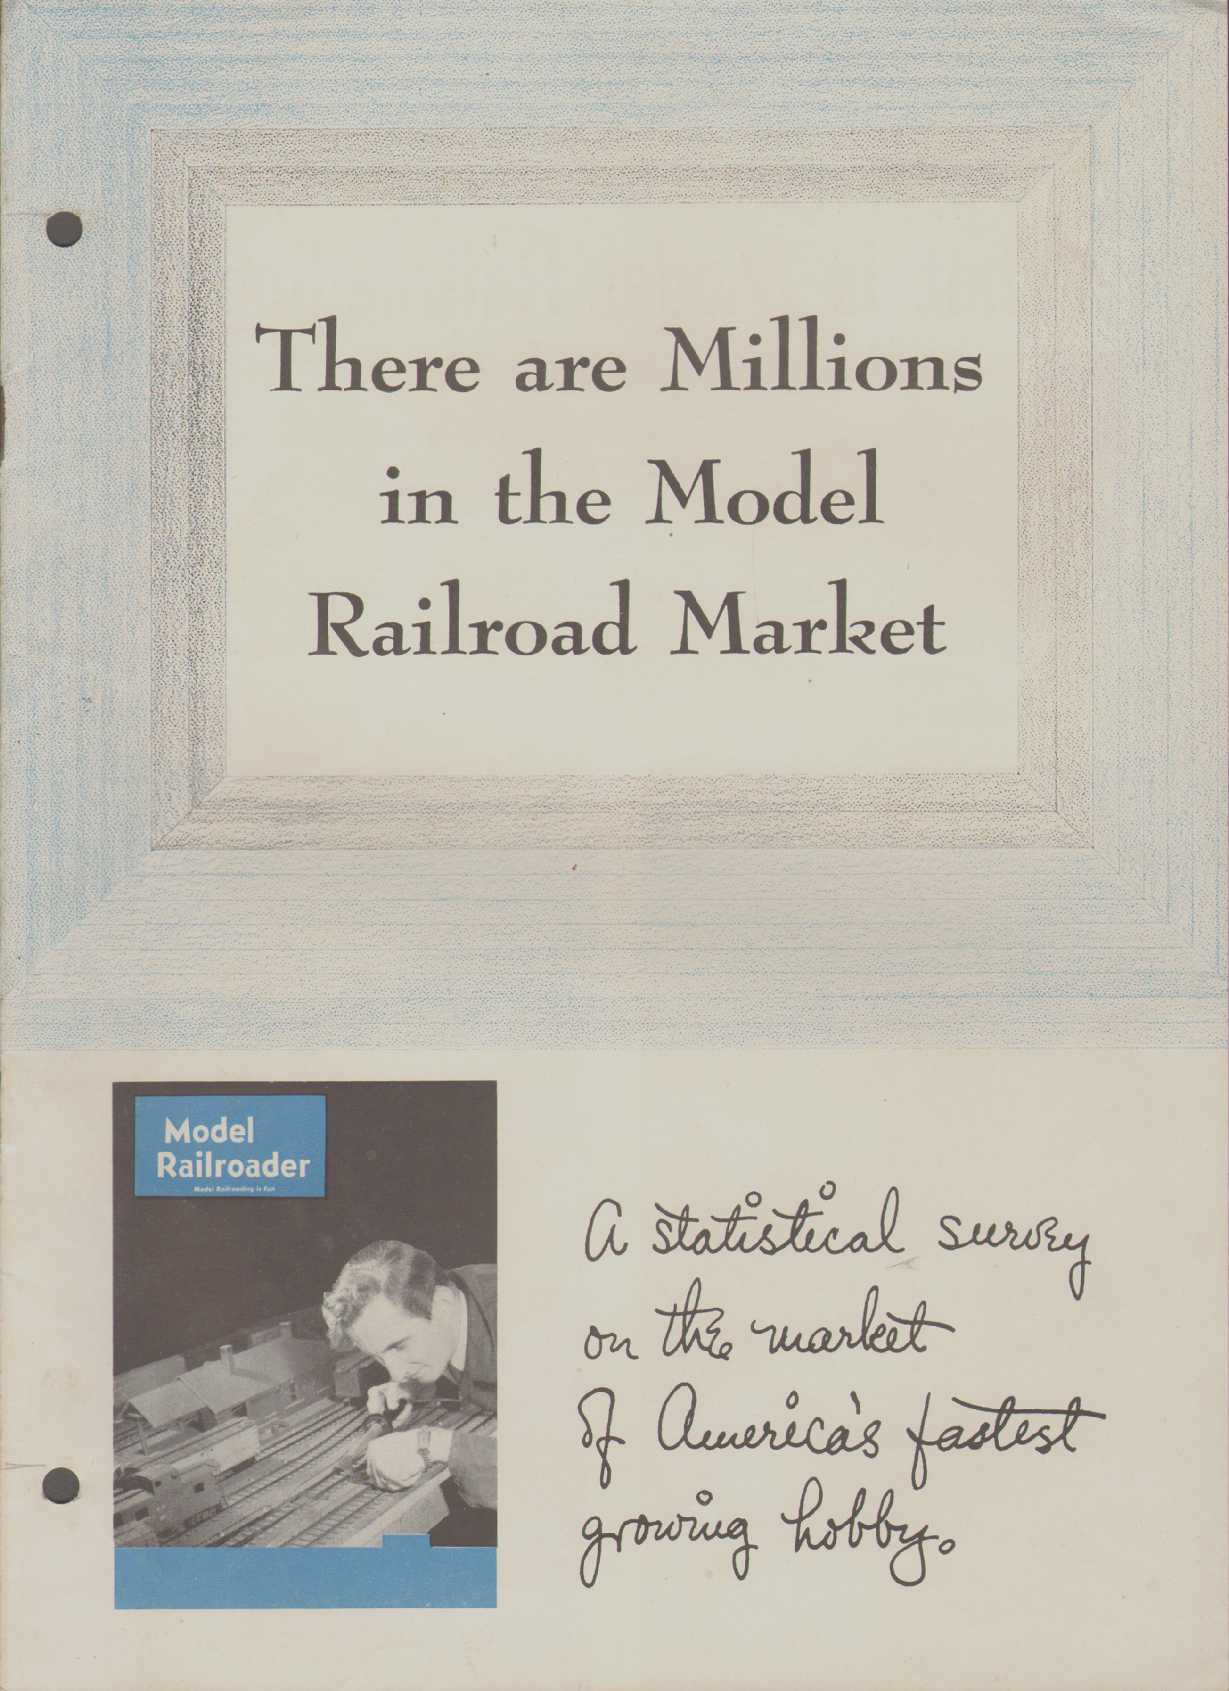 THERE ARE MILLIONS IN THE MODEL RAILROAD MARKET A Statistical Survey of the Market of America's Fastest Growing Hobby., Kalmbach, A. C.